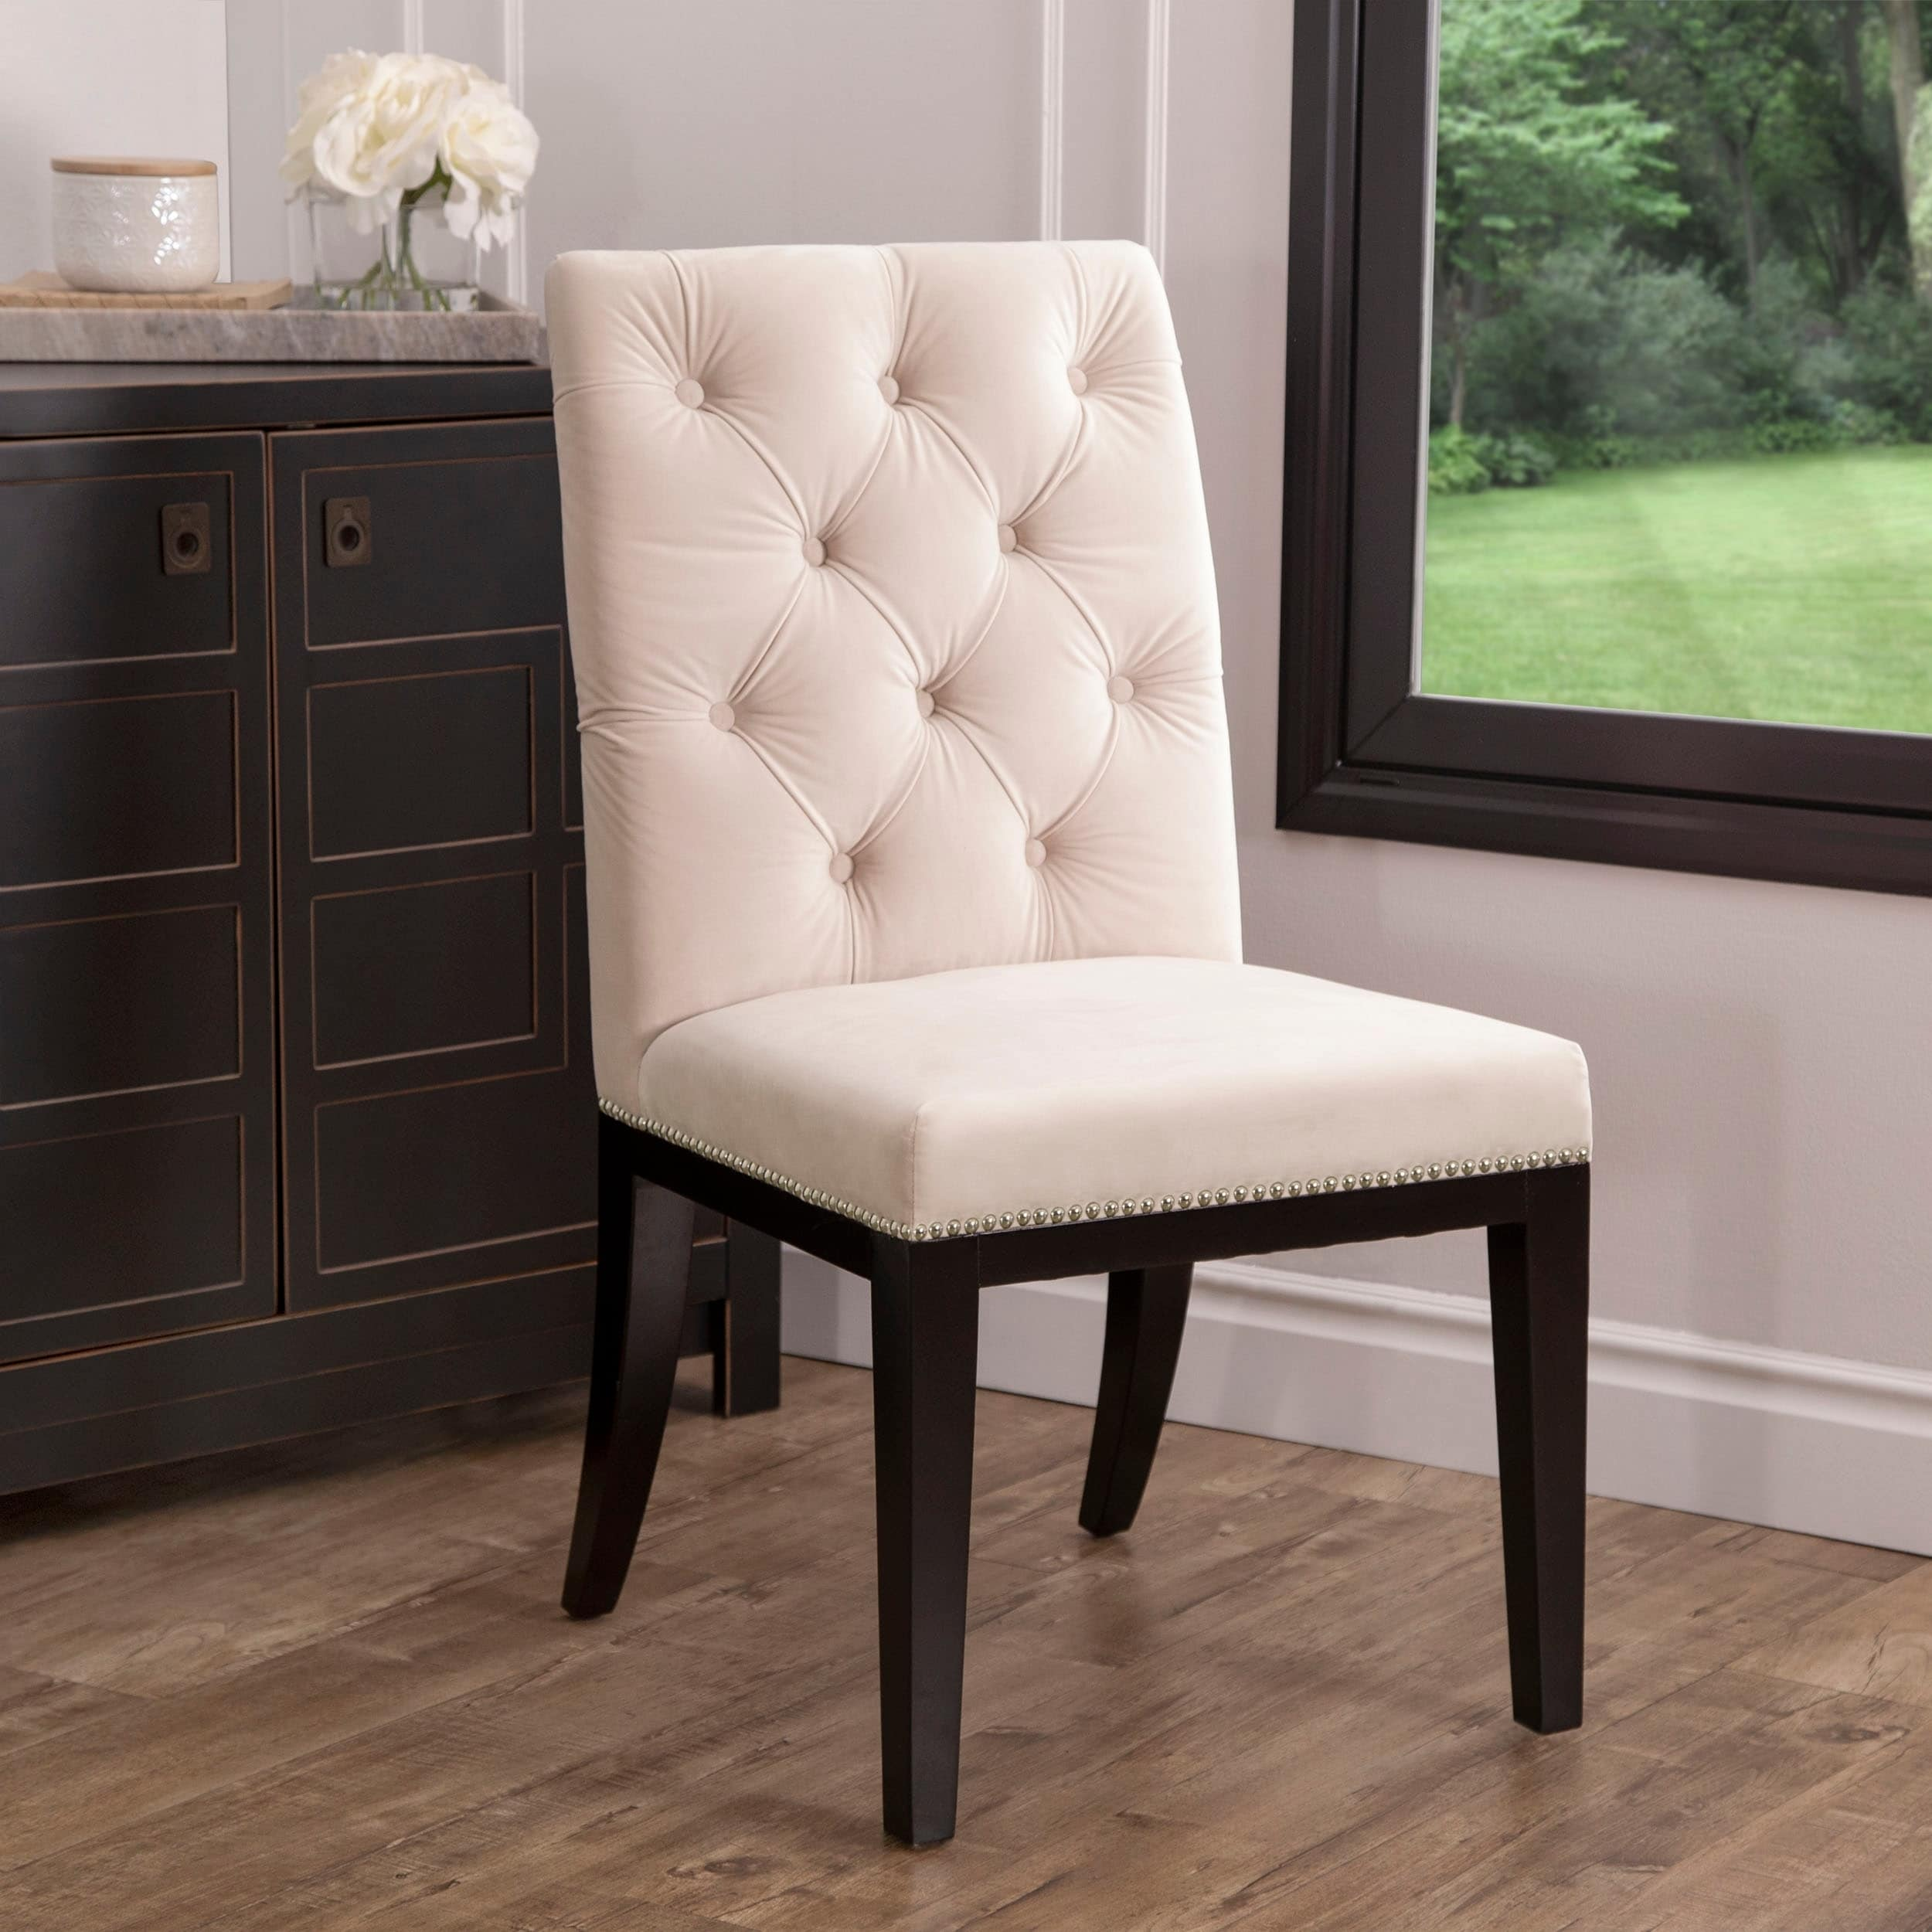 4abaf2923e6 Shop Abbyson Bordeaux Tufted Dining Chair - On Sale - Free Shipping Today -  Overstock - 25993401